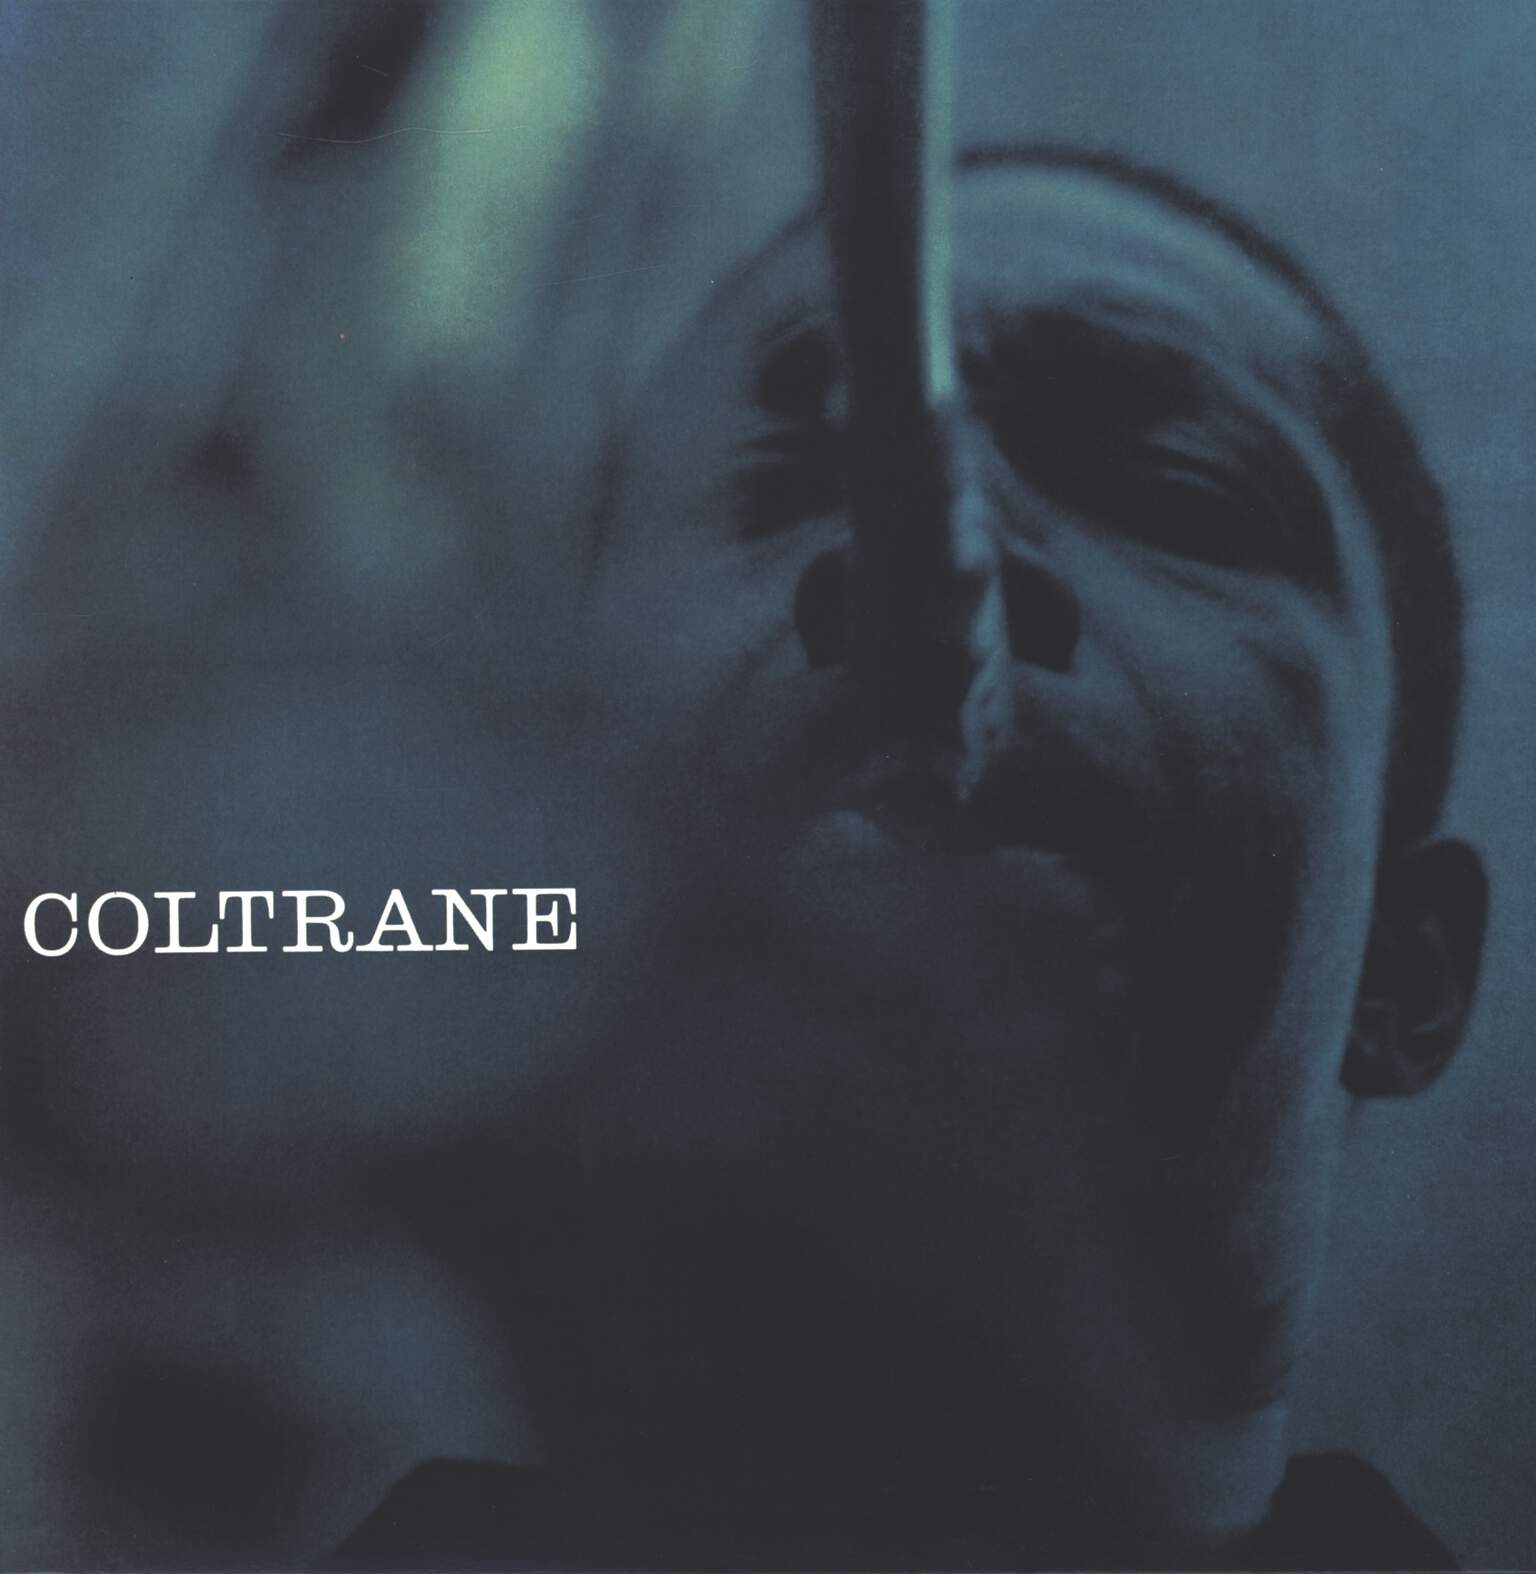 The John Coltrane Quartet: Coltrane, LP (Vinyl)